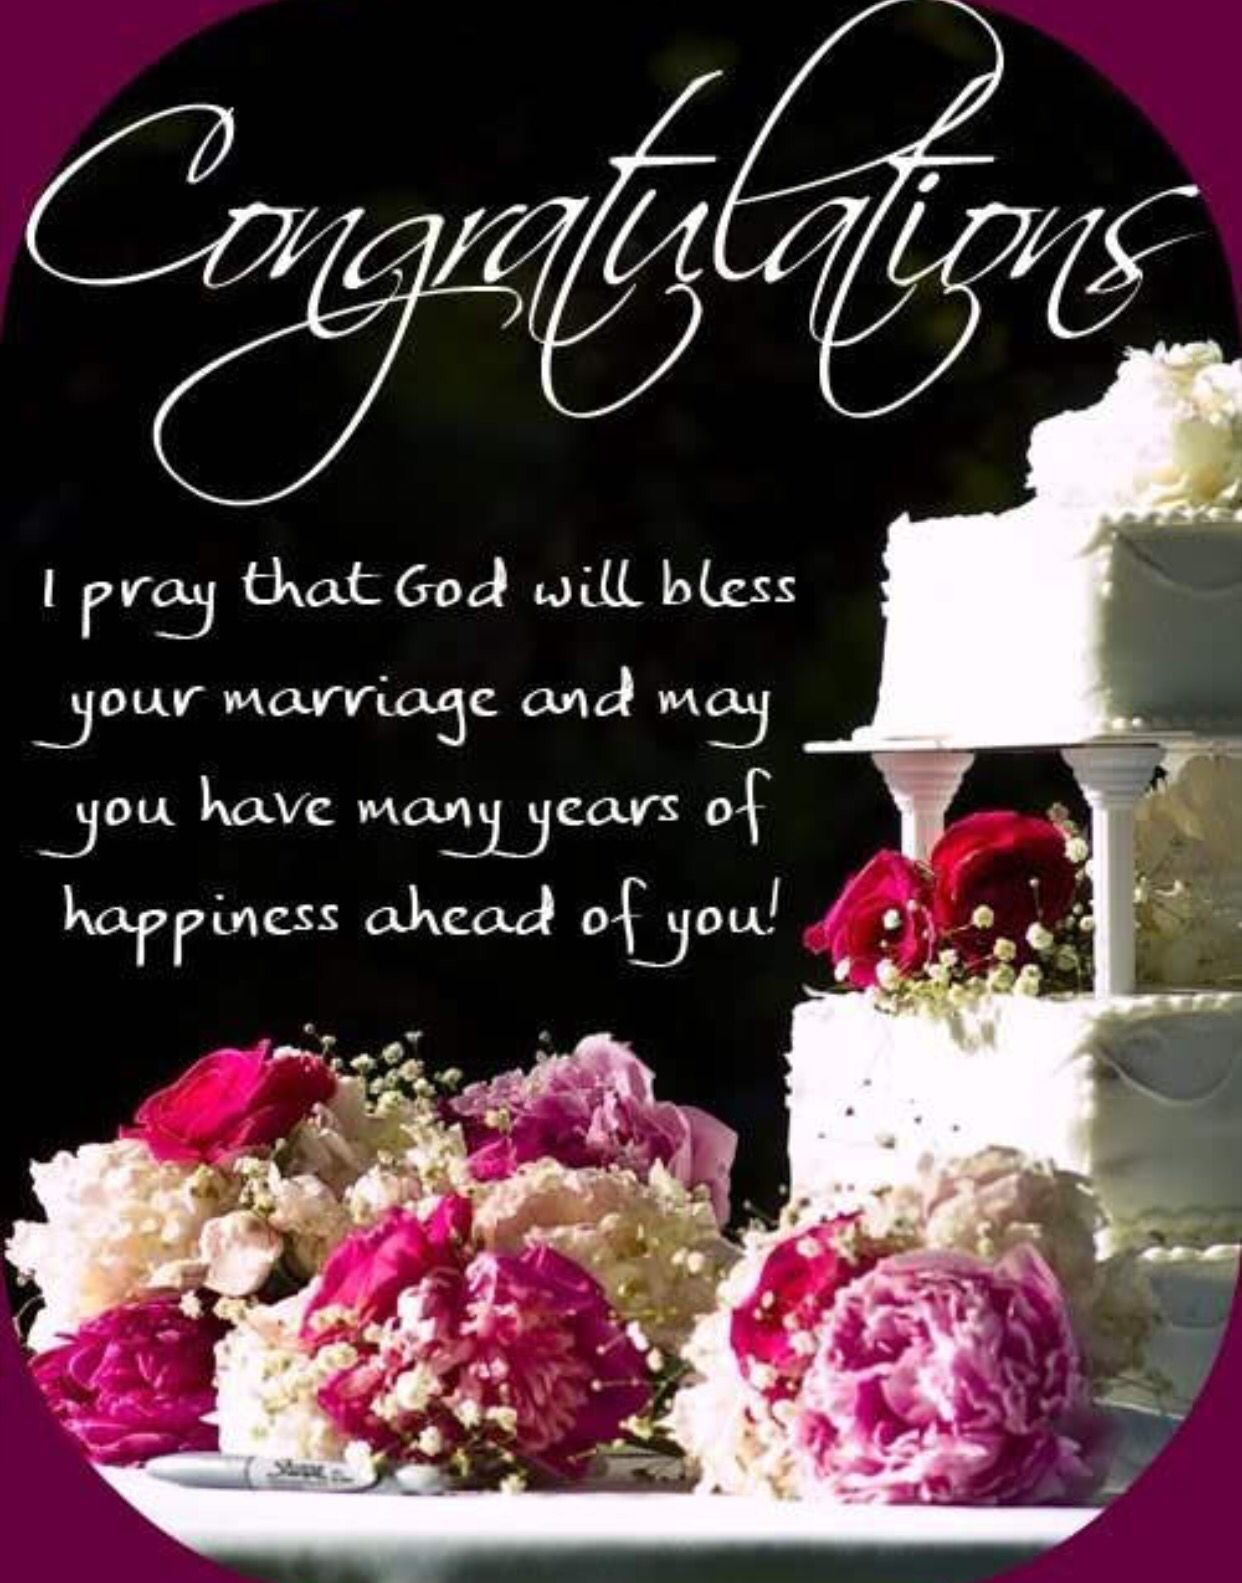 Congratulations Bride Groom Wedding Greetings Happy Wedding Anniversary Wishes Happy Anniversary Cakes